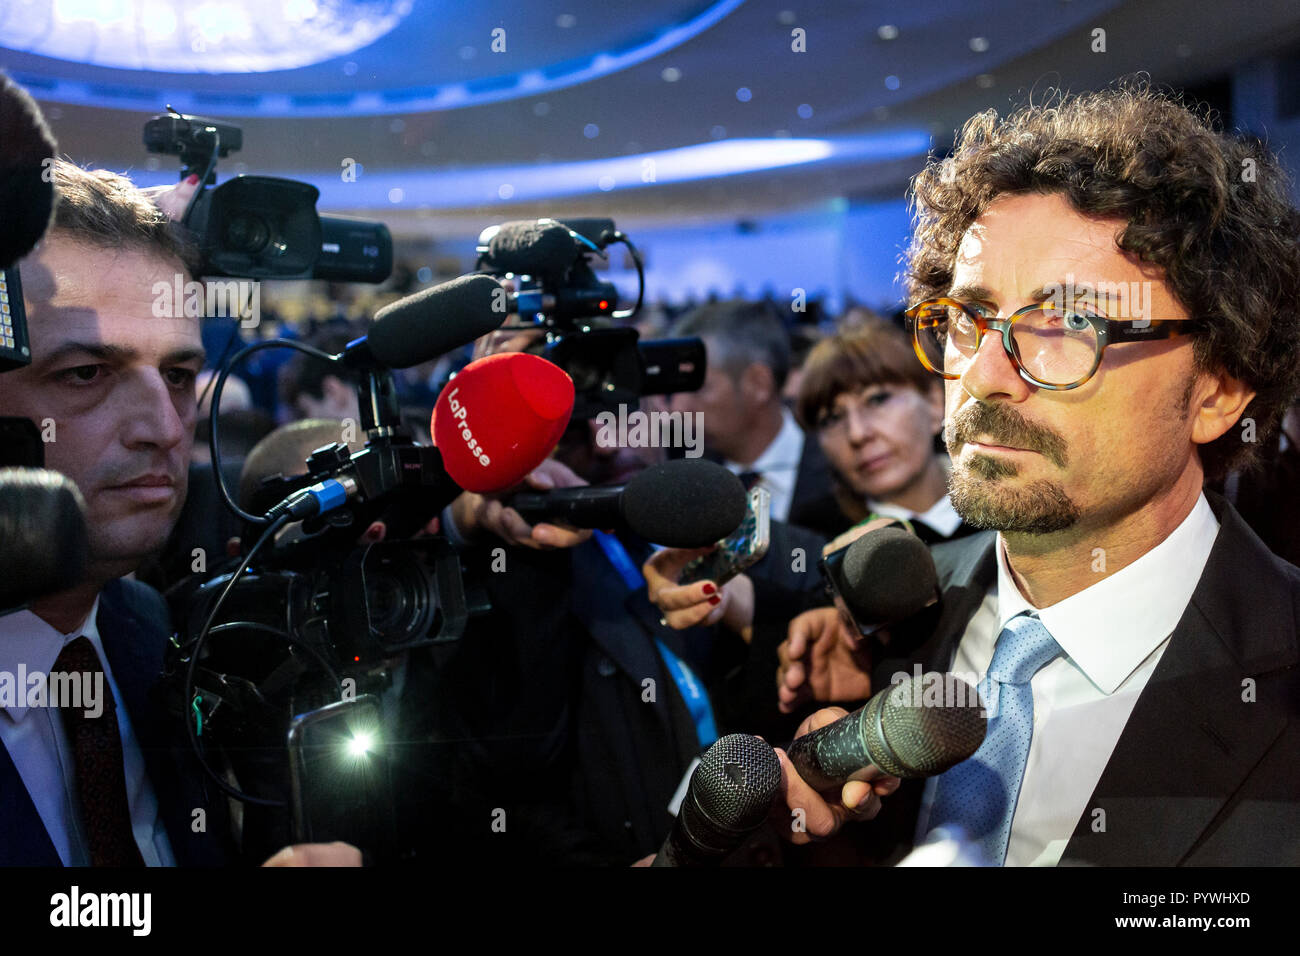 Rome, Italy. 31st Oct, 2018. Public Assembly of Confitarma with the participation of the Minister of Infrastructures and Transport Danilo Toninelli. Deputy Minister Matteo Salvini is among the guests in the hall. Outside, a delegation of shipowners asked to speak with Minister Toninelli. (Italy, Rome, 31 October 2018) Credit: Independent Photo Agency/Alamy Live News - Stock Image